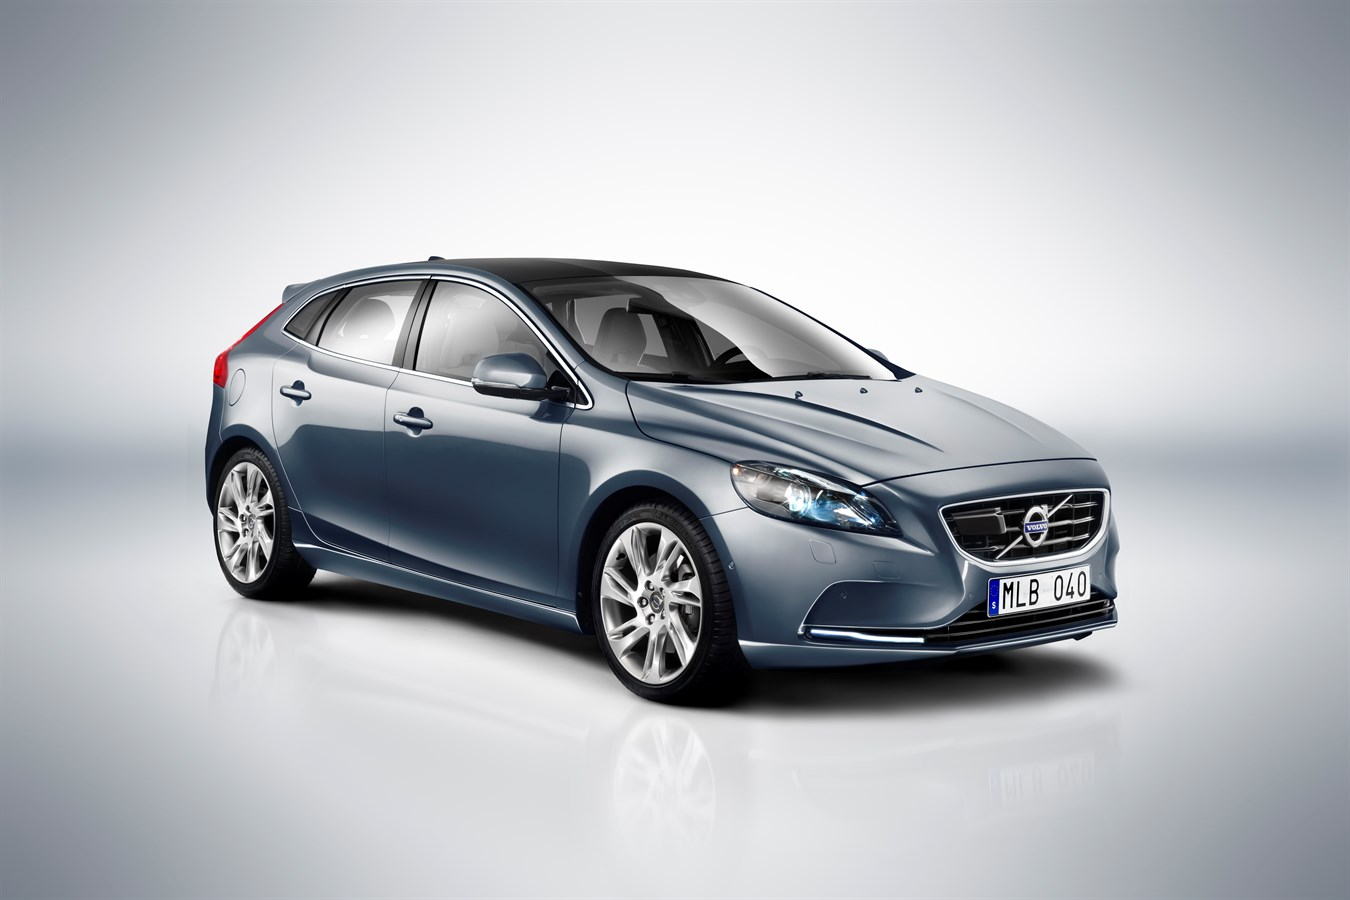 Volvo Car Group launches external, car-enveloping airbag technology